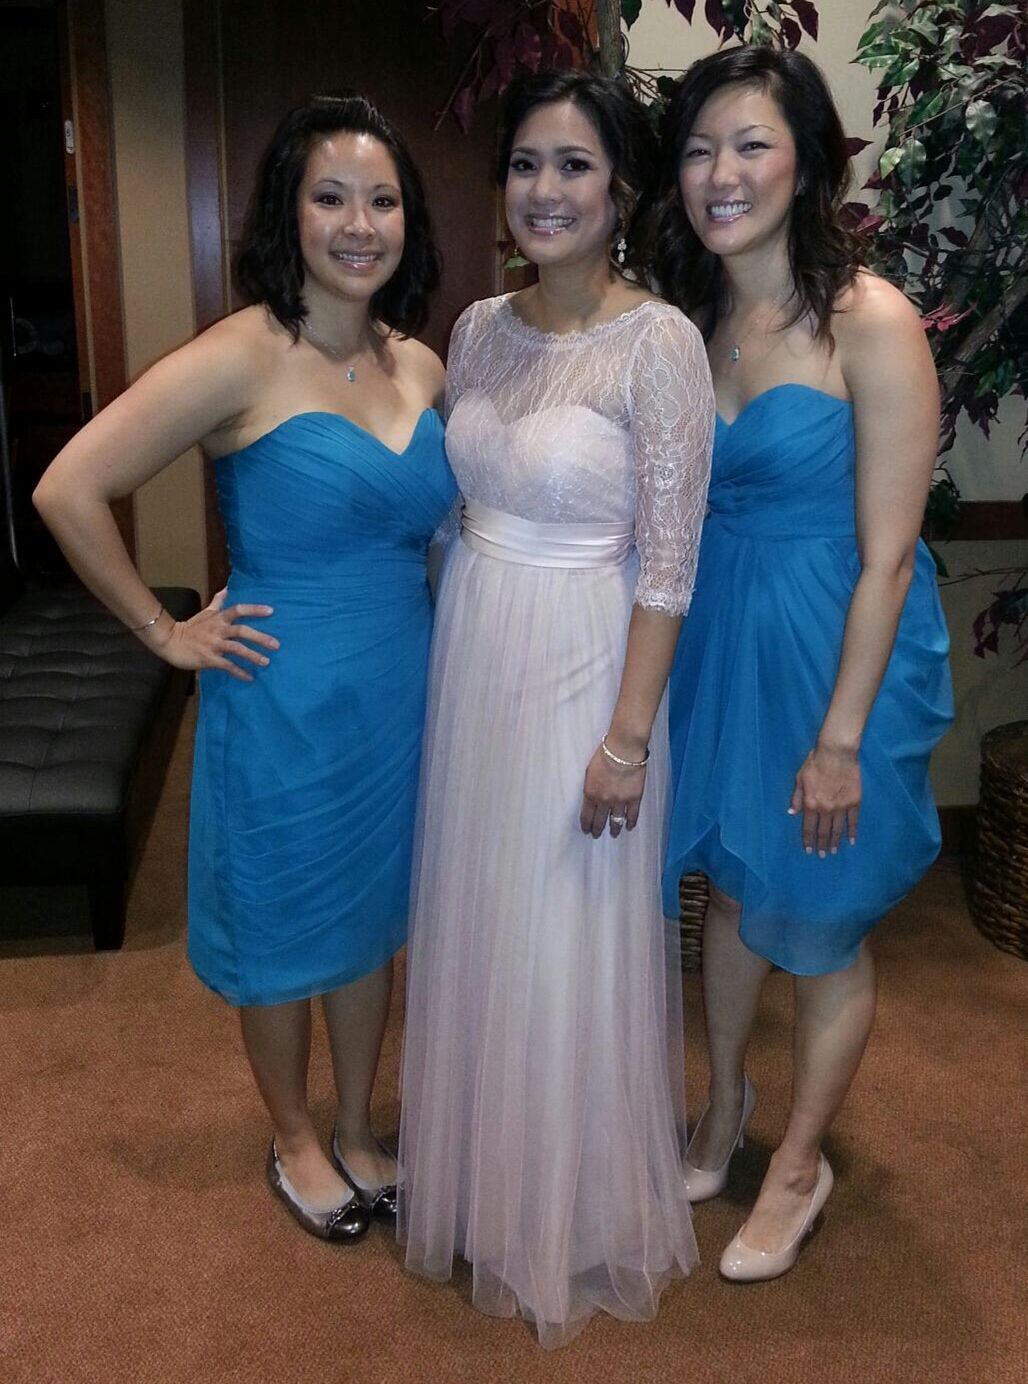 Teal bridesmaid dresses jenny yoo tulle blush dress with jenny teal bridesmaid dresses jenny yoo tulle blush dress with jenny yoo marnie topper ombrellifo Image collections